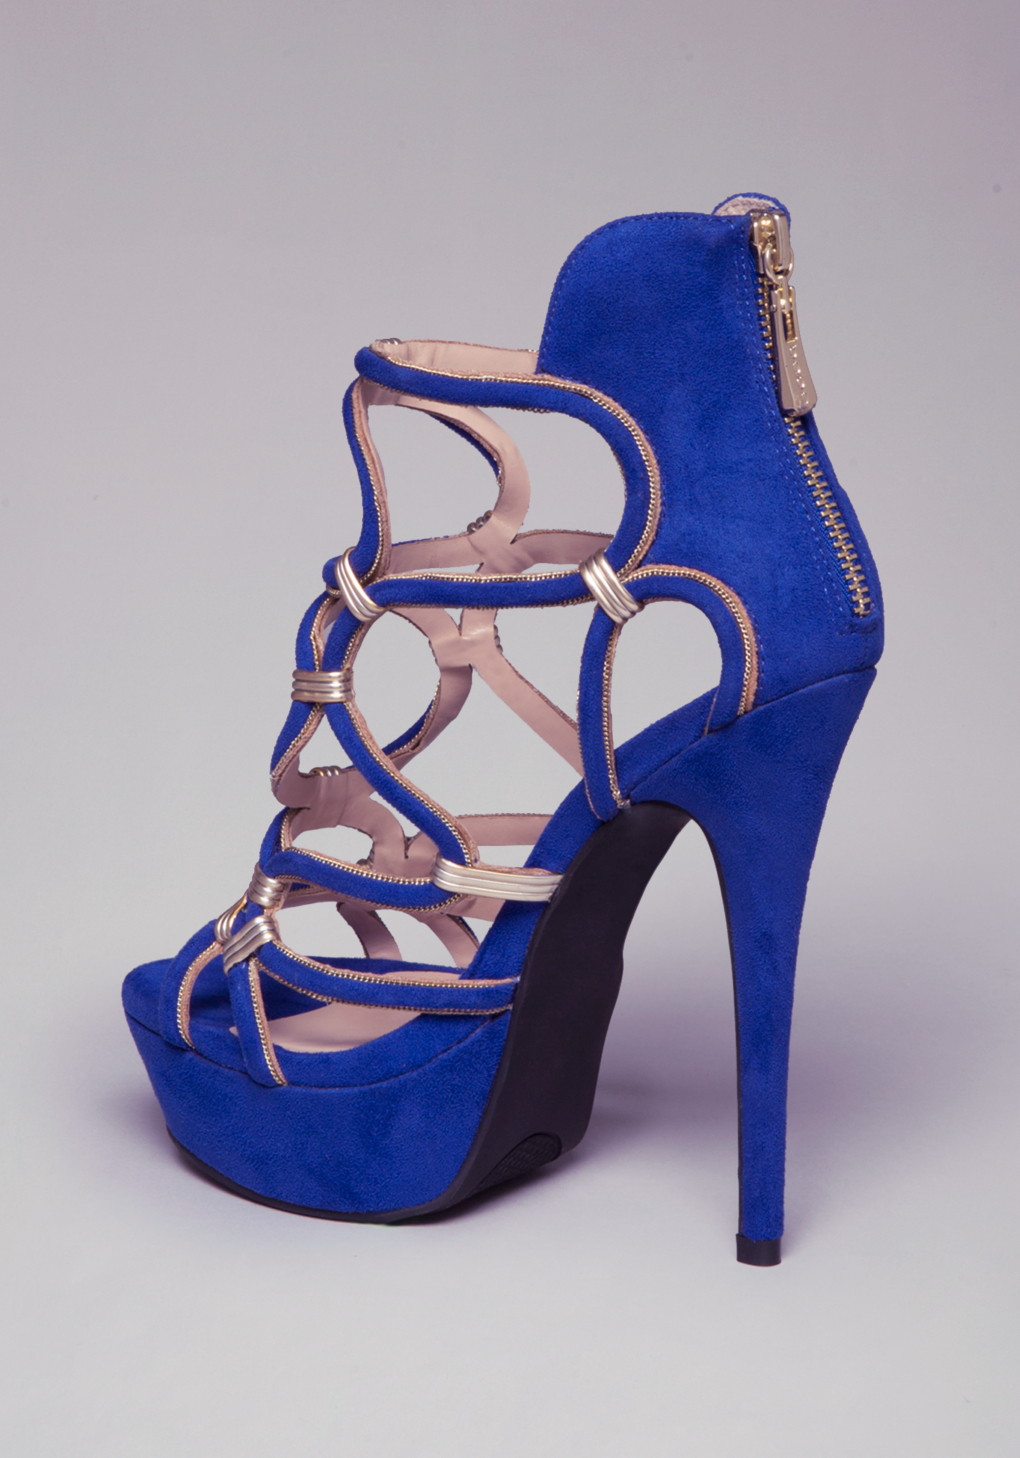 f1a1cb2566c Lyst - Bebe Charmaine Strappy Sandals in Blue